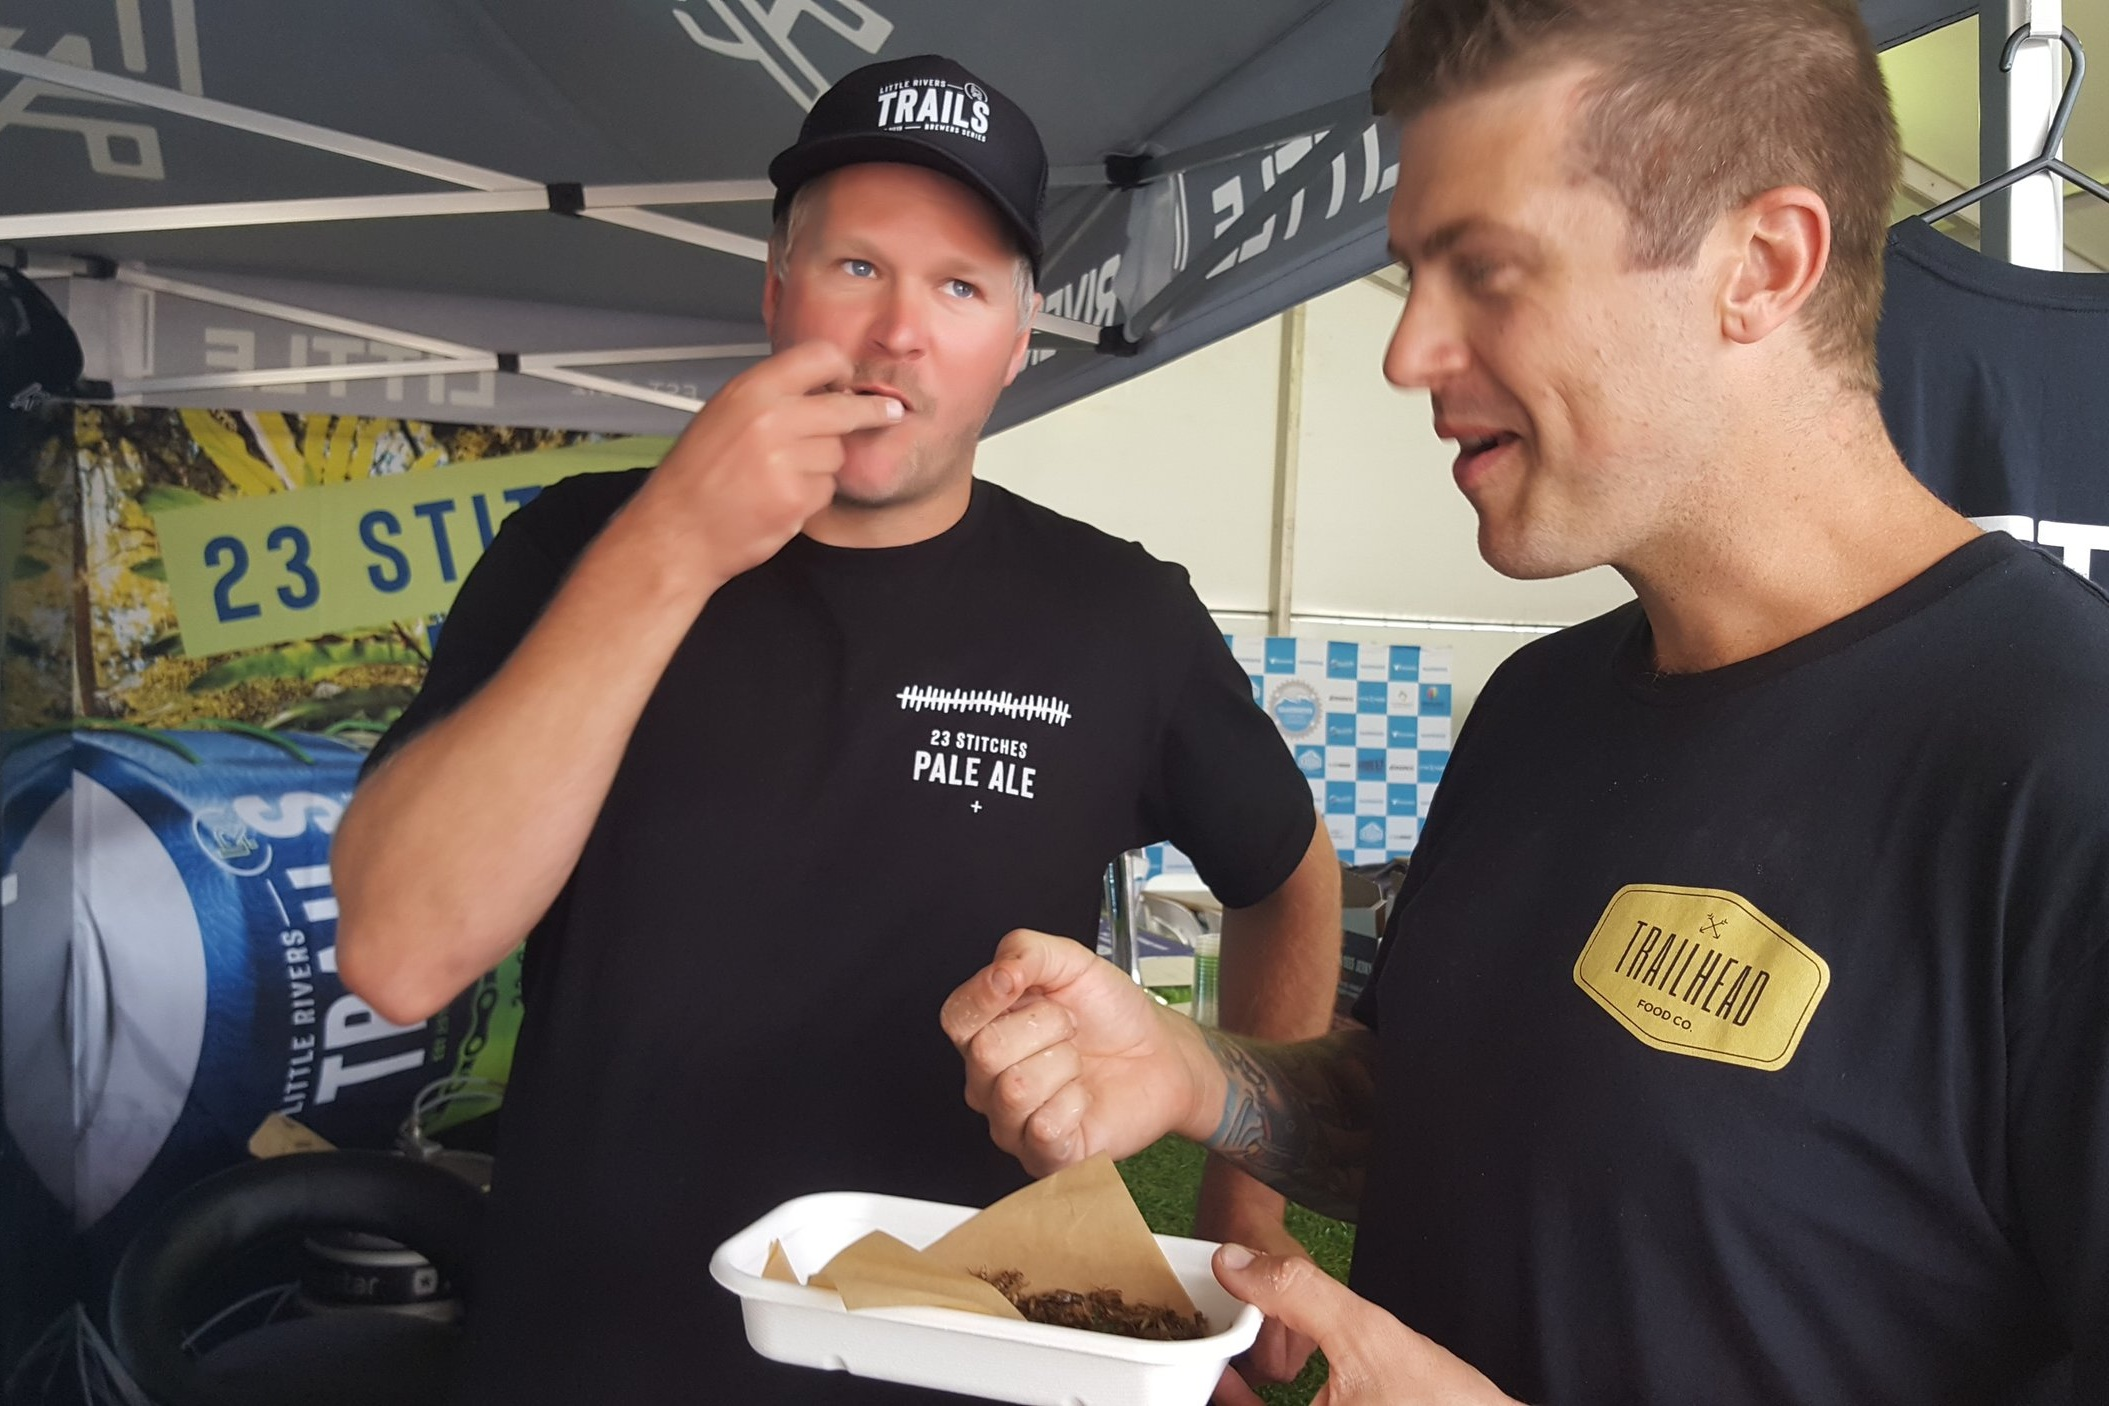 Chris Carins (LRB) and Mark Cornish (Trailhead Food Co) eating crickets at the EWS Derby festival village.